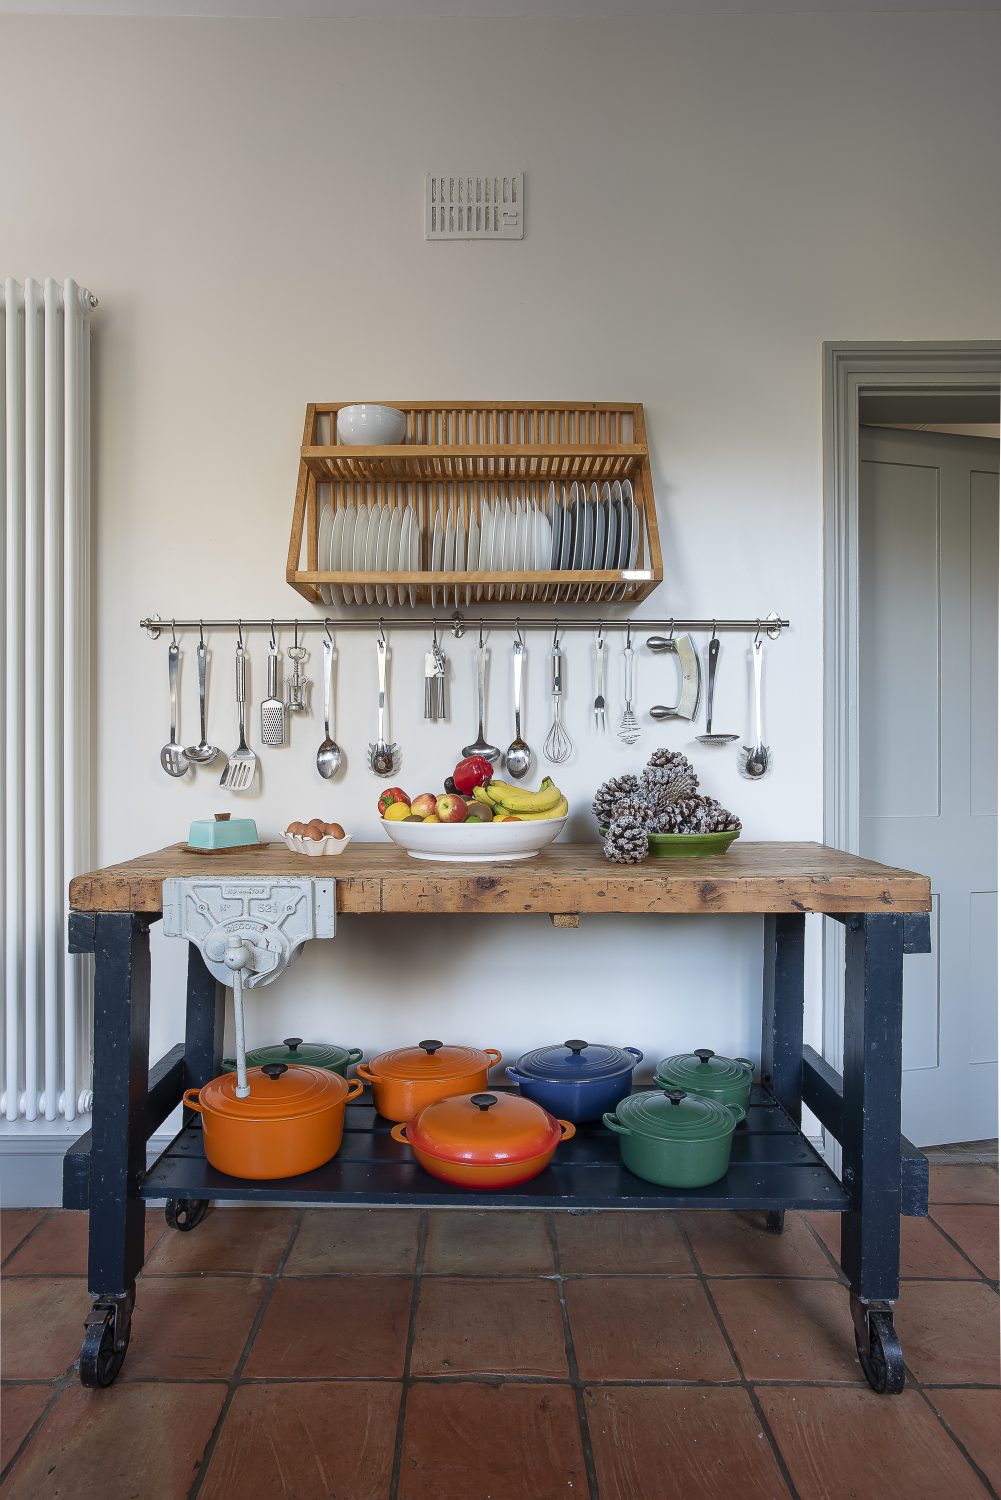 An old butcher's block, which was found locally, serves as a work station, and doubles as a showcase for Toby's much loved collection of Le Creuset casseroles